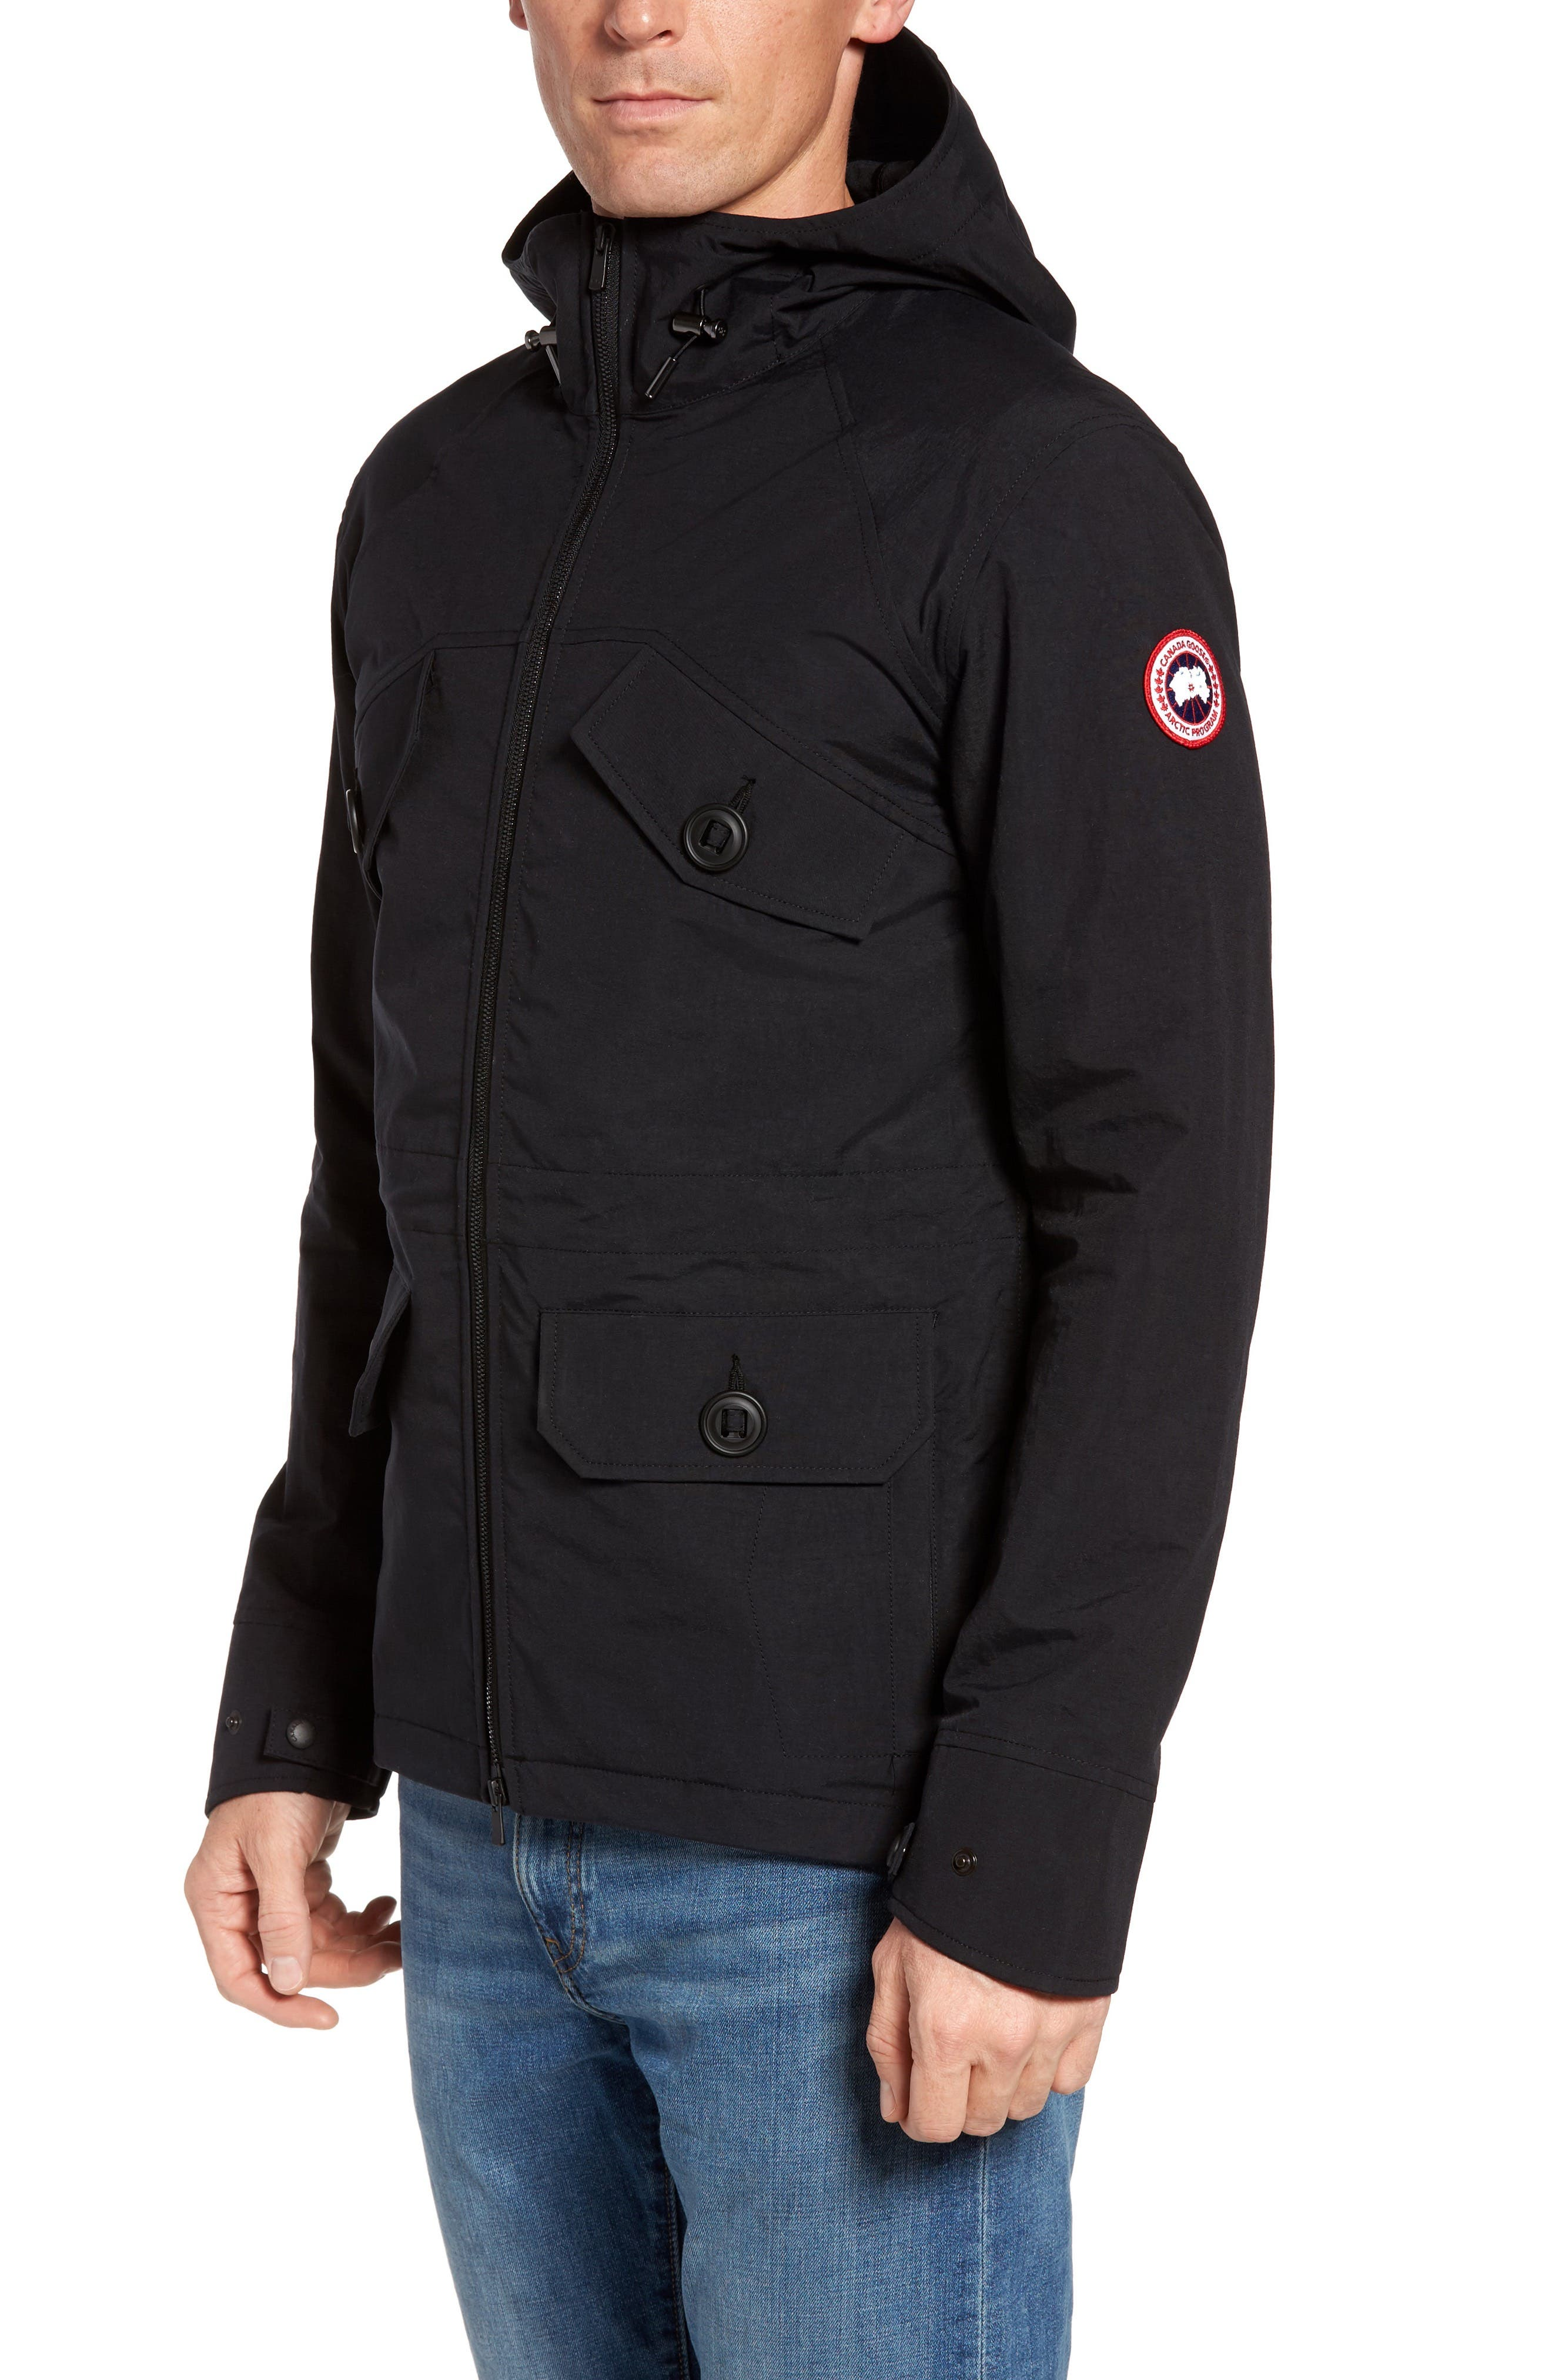 CANADA GOOSE,                             Redstone Slim Fit Hooded Jacket,                             Main thumbnail 1, color,                             001